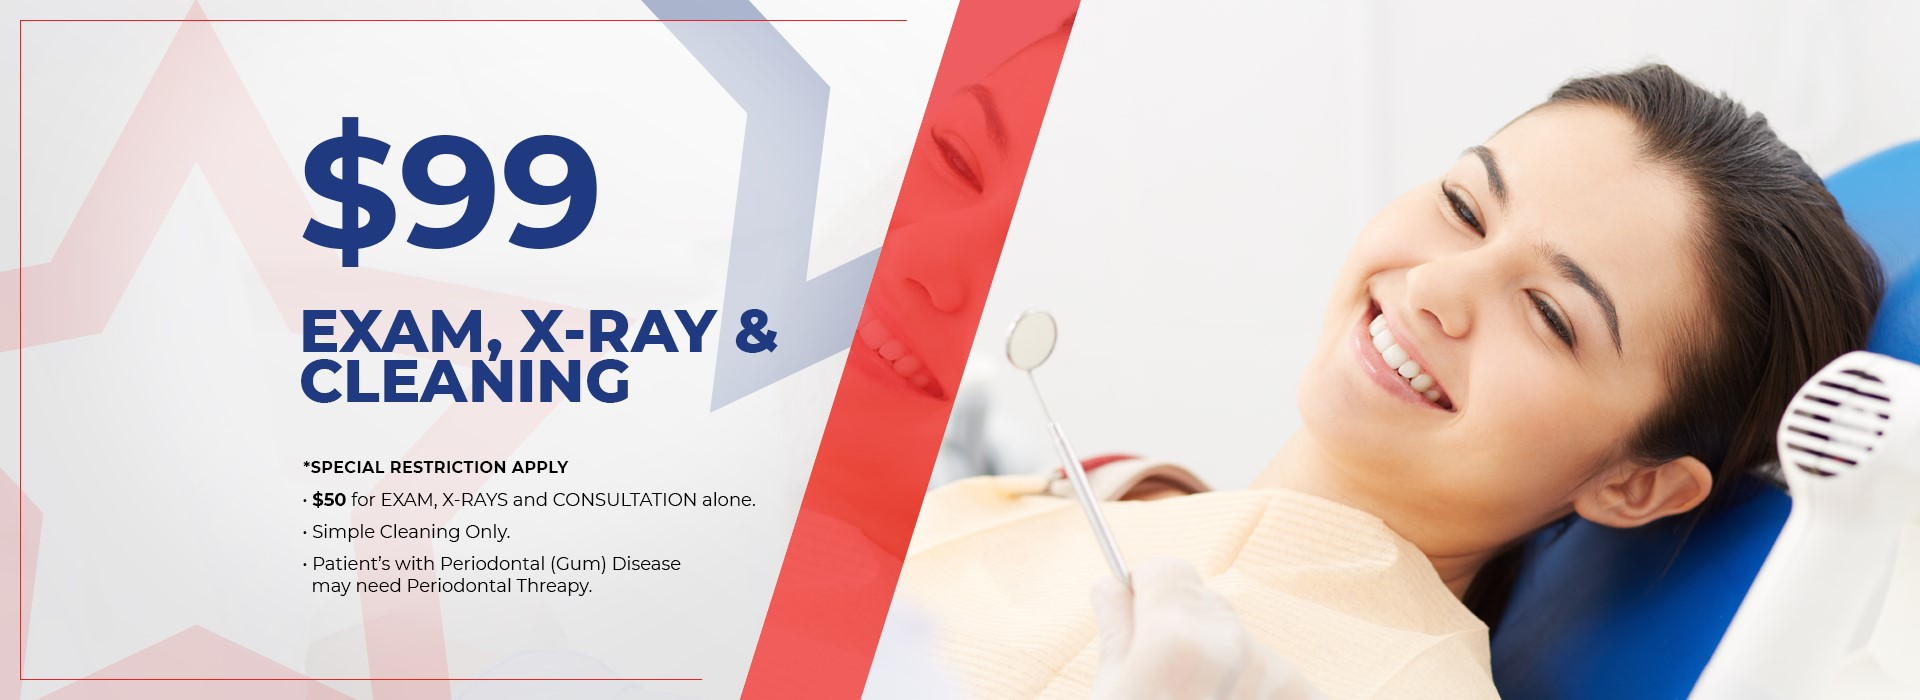 exam-xray-cleaning-banner